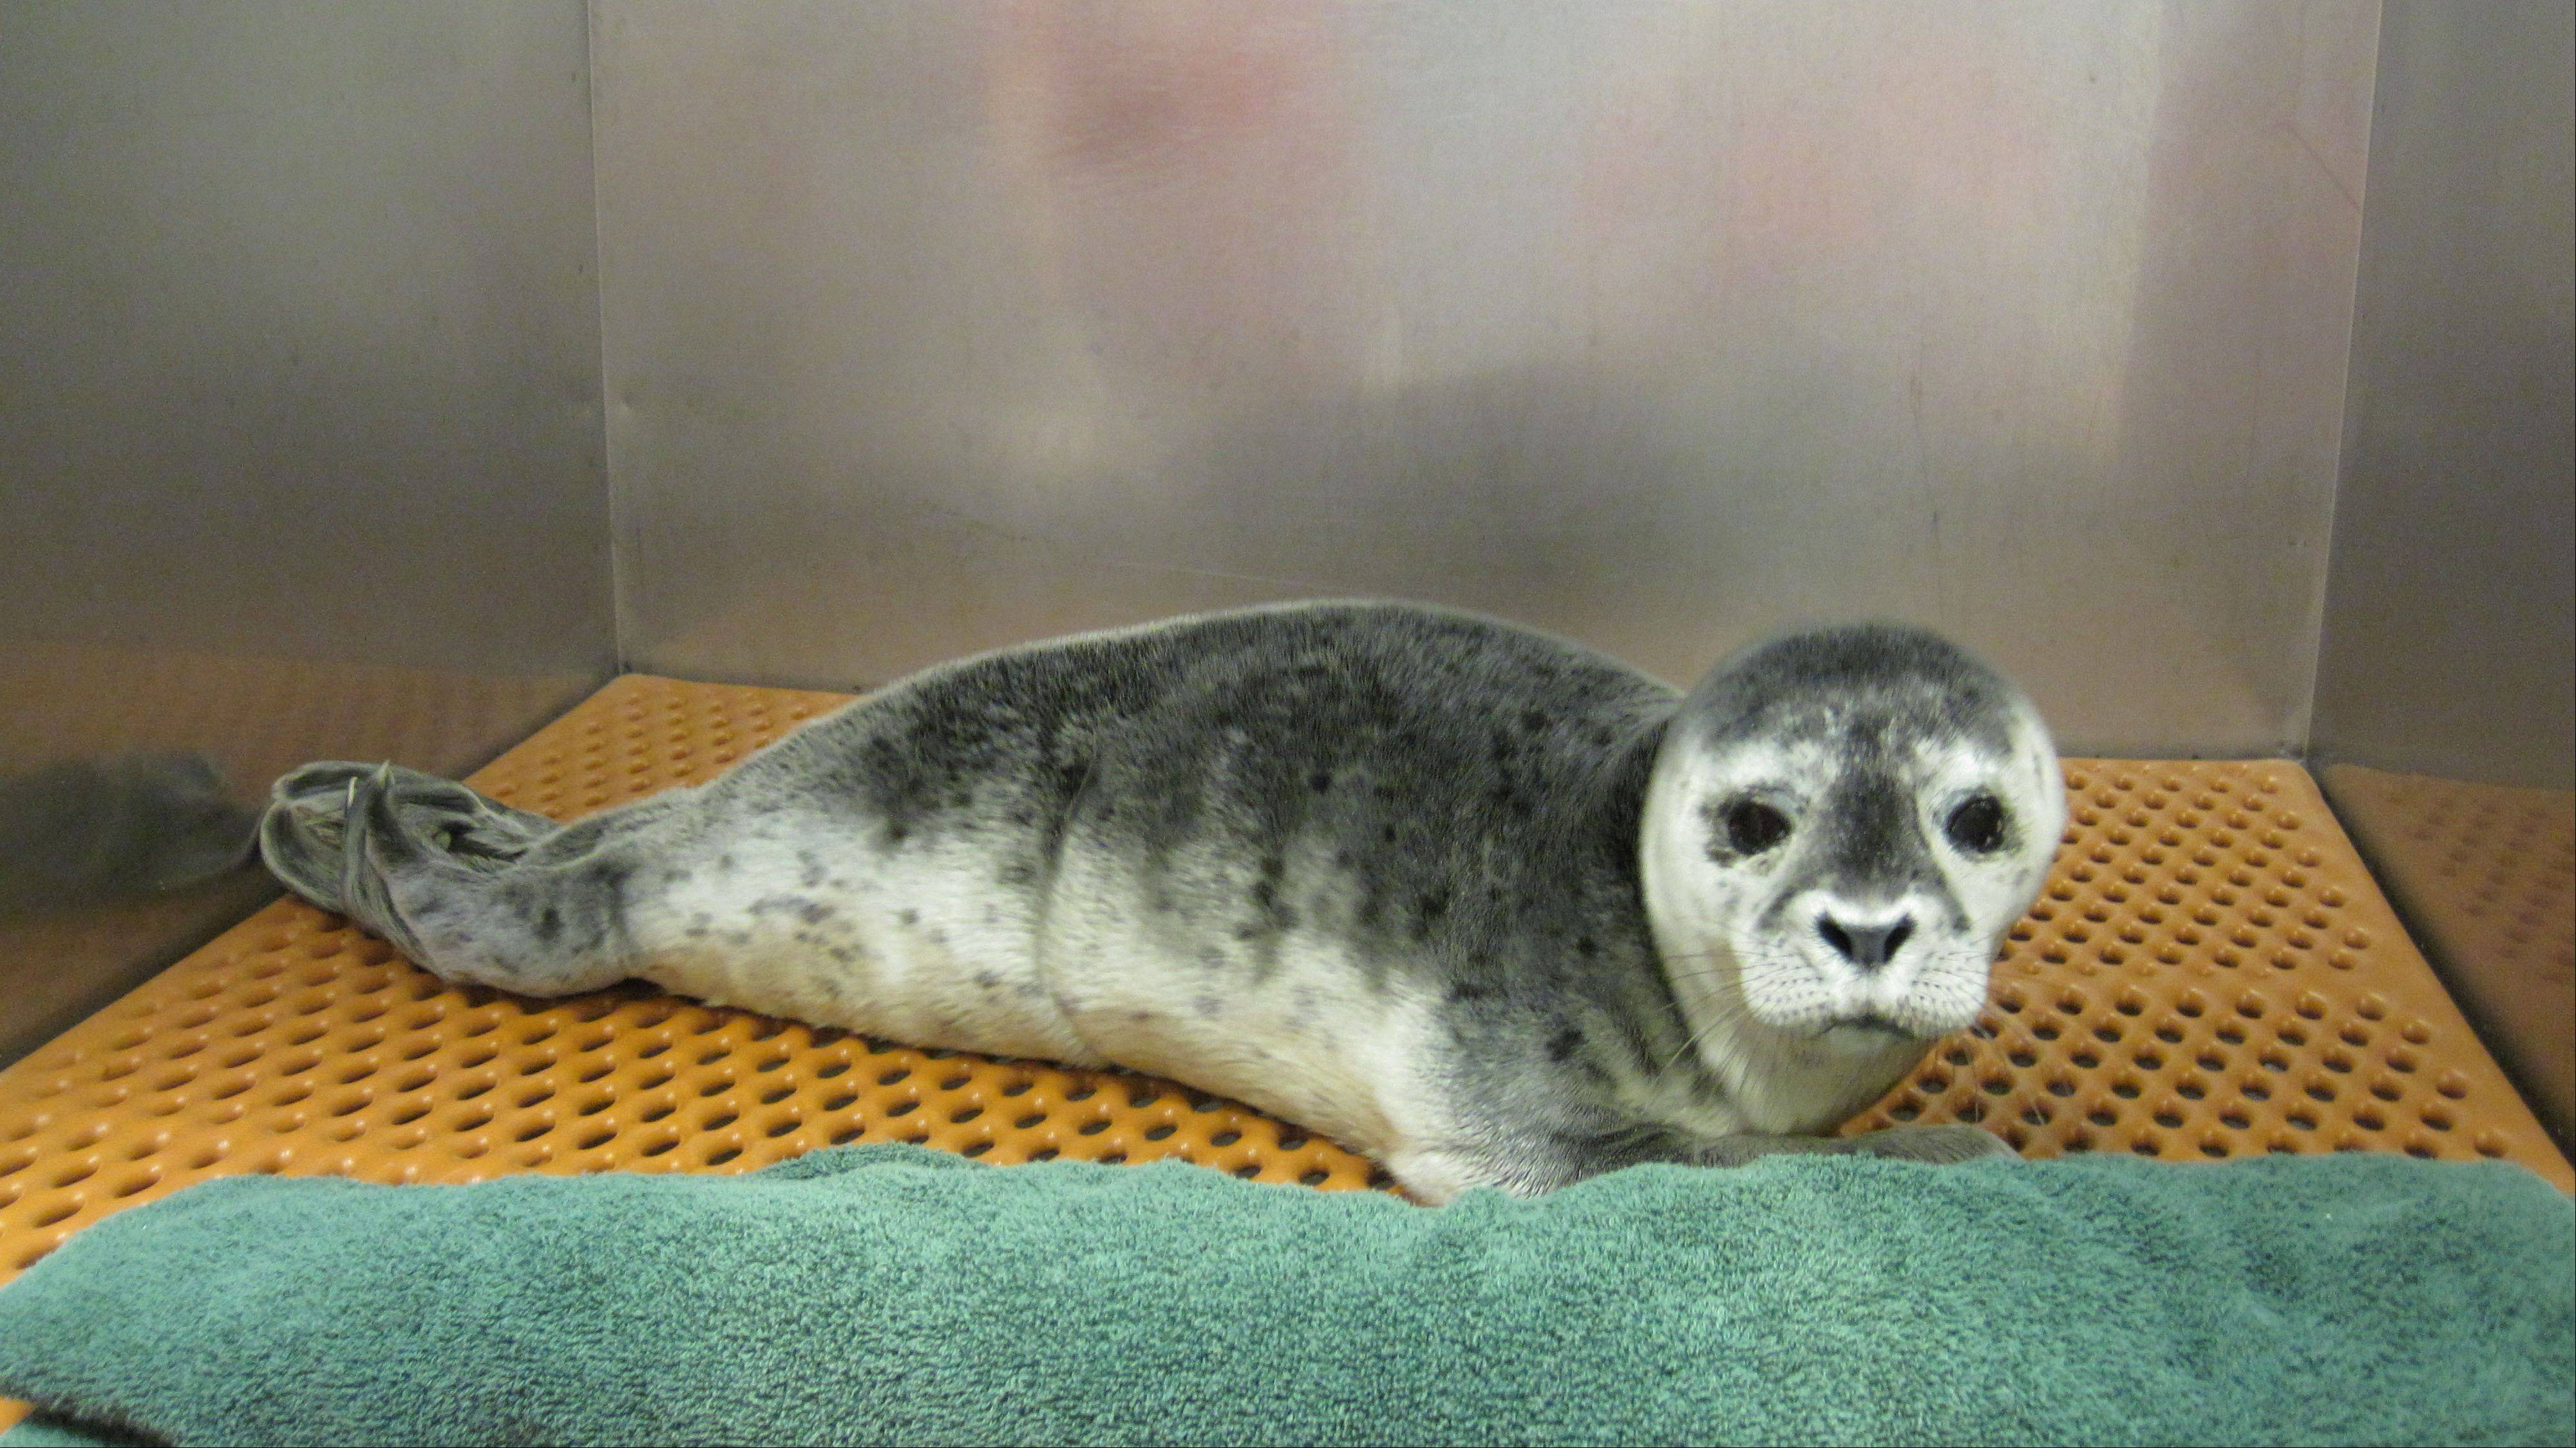 A female Harbor seal pup rests on a mat Saturday in the Riverhead Foundation facility at the Long Island Aquarium in Riverhead, N.Y.